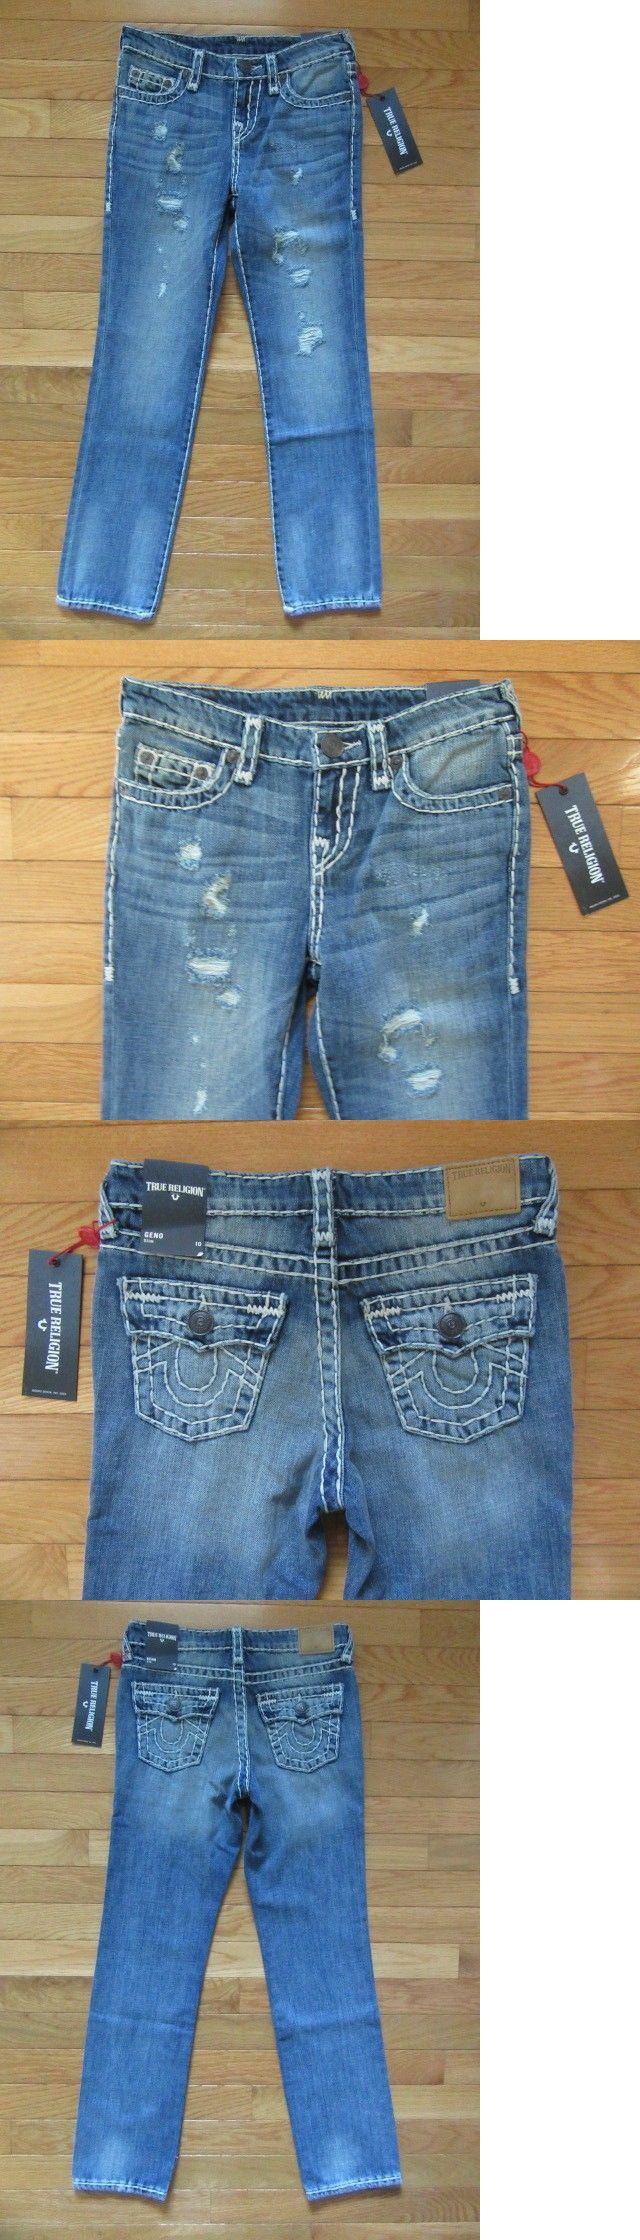 b004e55ee Jeans 175658: True Religion Boys Geno Super T Jeans, Muddy Blue, Tr917jn13,  Nwt$129, 10 -> BUY IT NOW ONLY: $59.99 on #eBay #jeans #religion #super # muddy